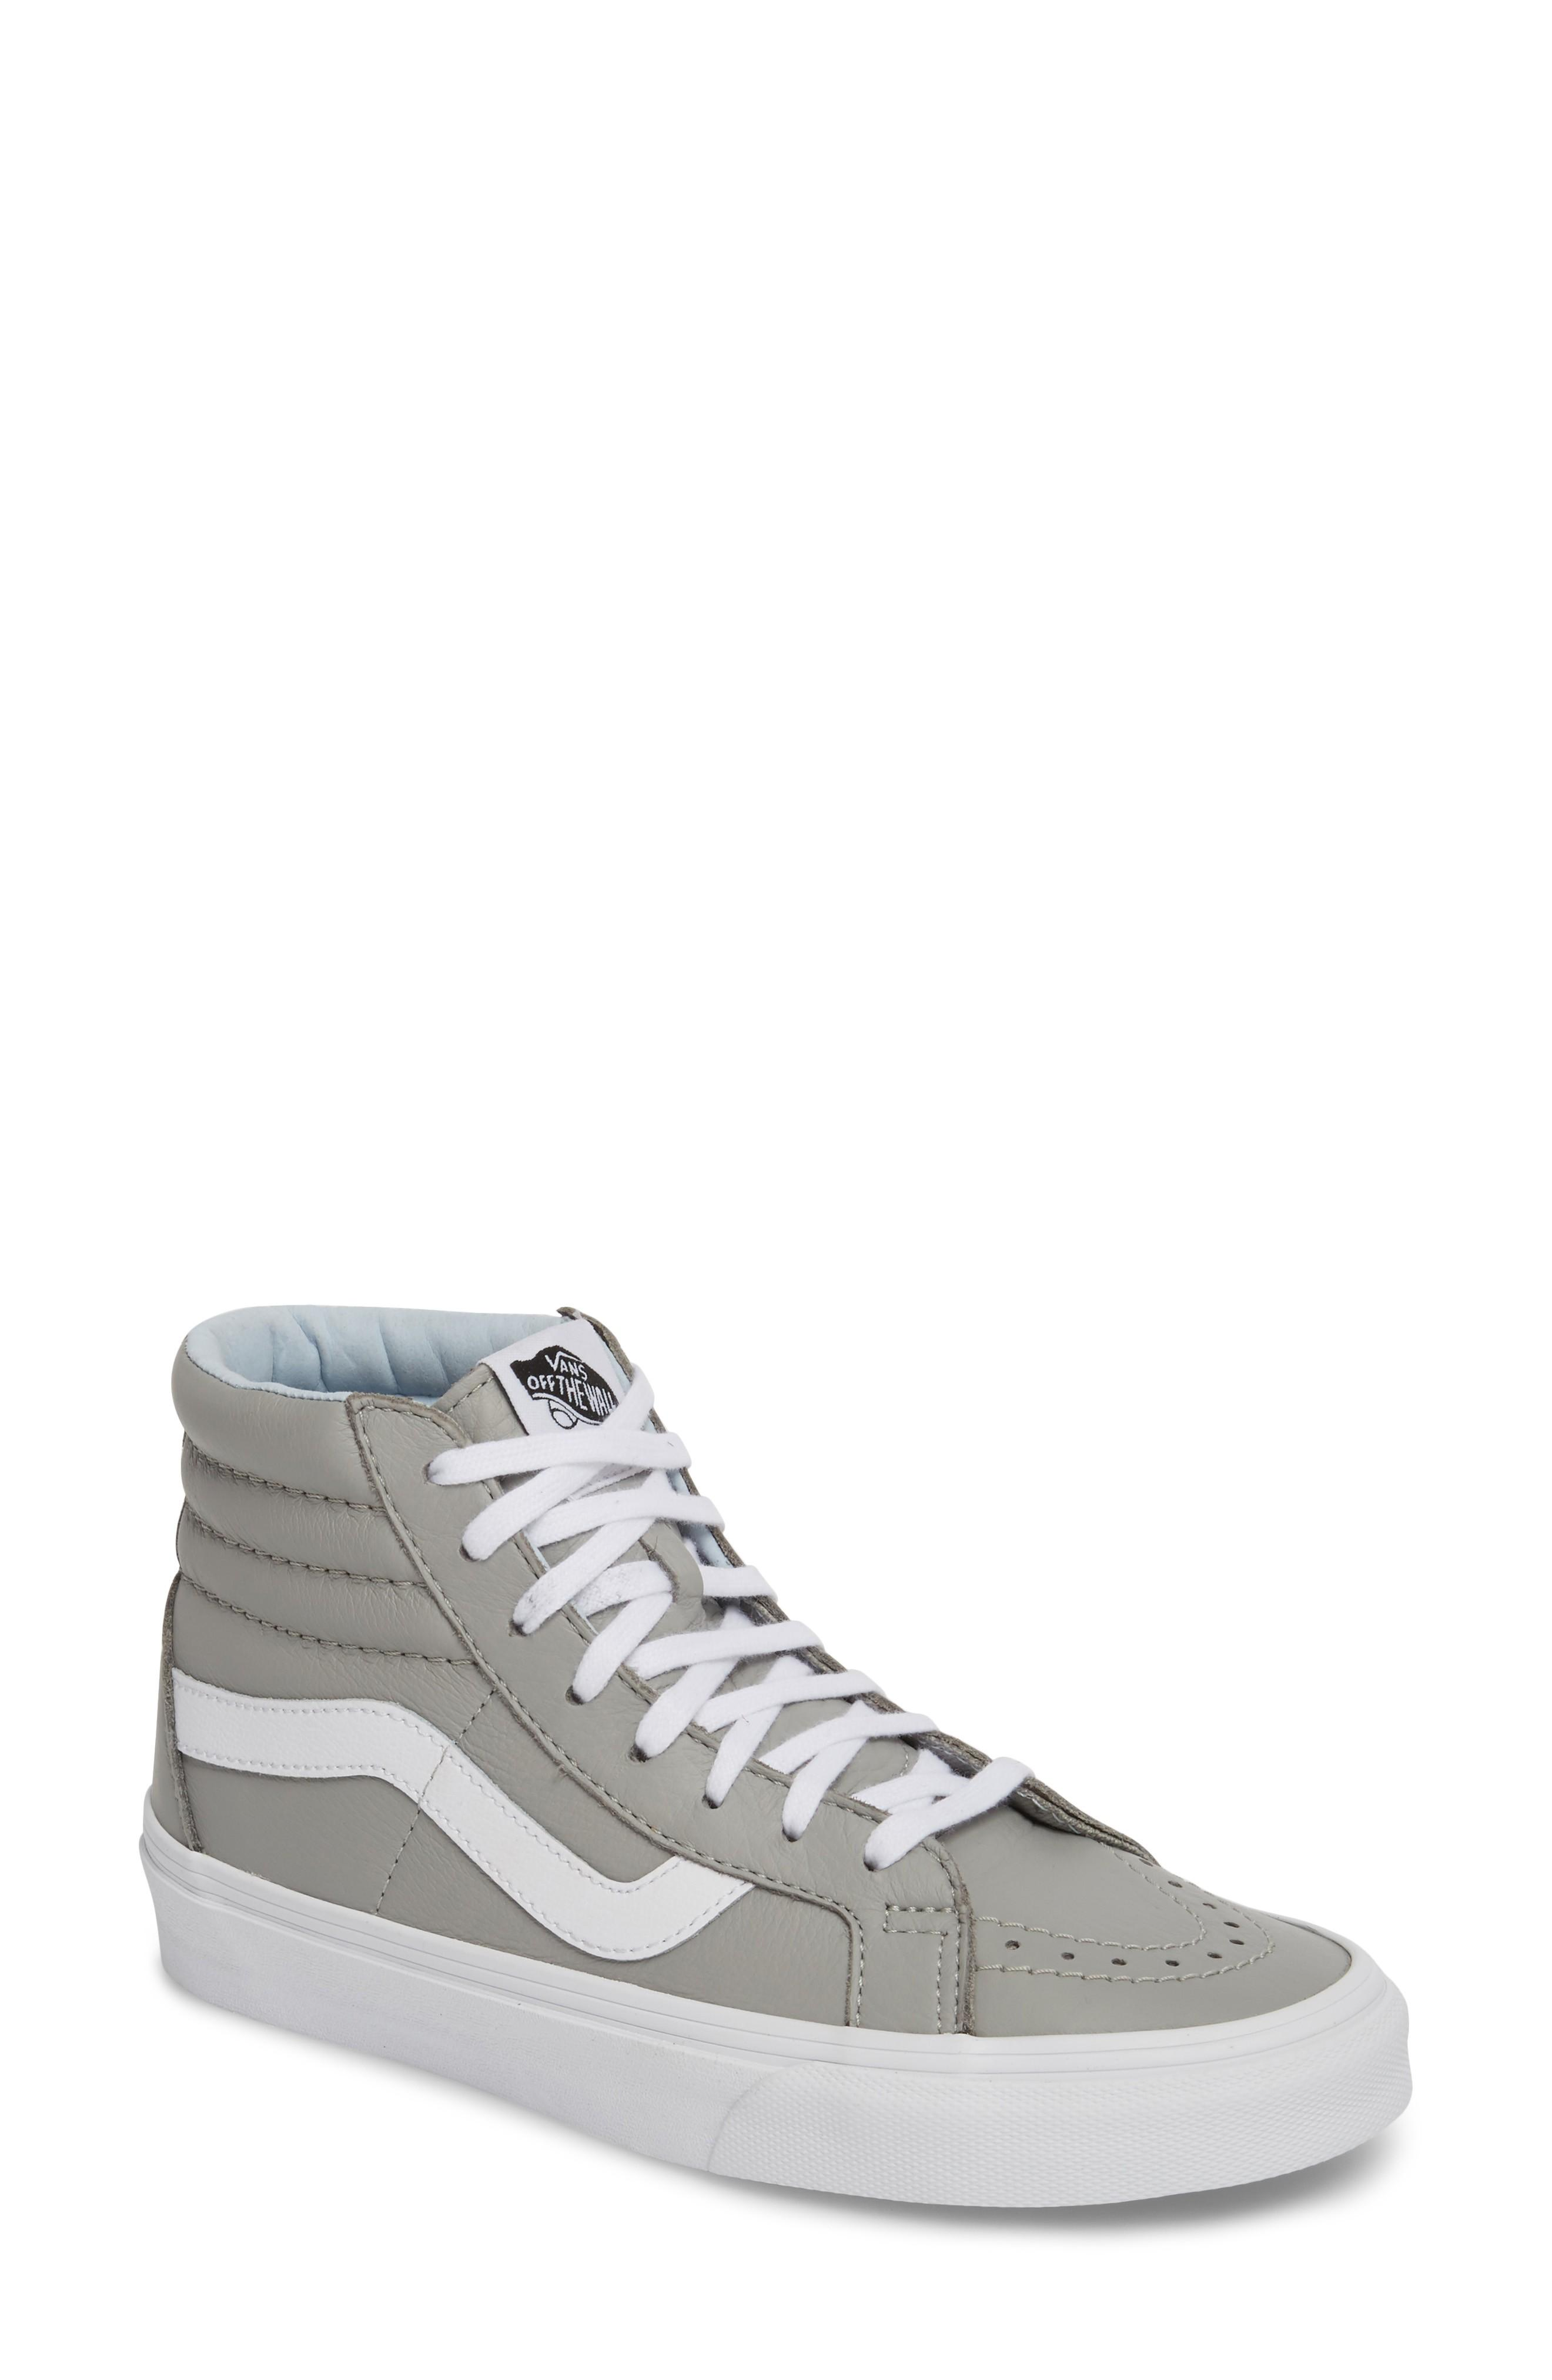 49ef77a12d A favorite old-school sneaker makes a cool comeback in soft suede